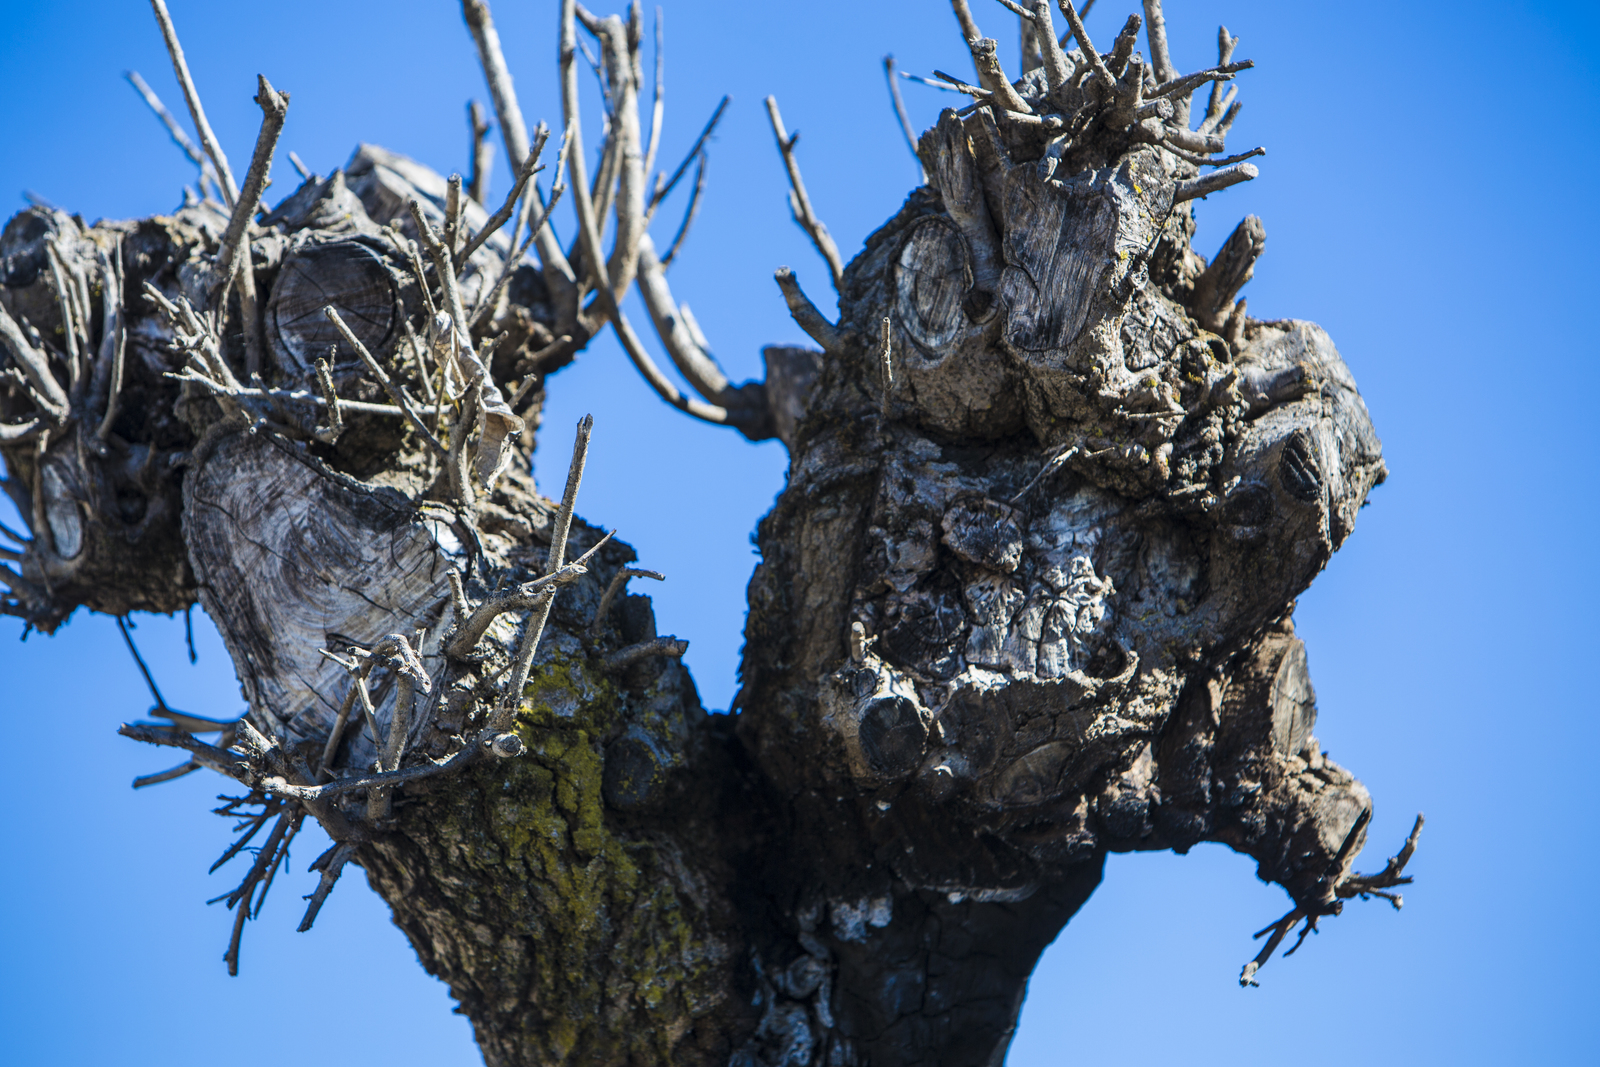 Napa, CA, August 30, 2014 ; A scorched tree stands in the aftermath of fire damage from broken gas lines at the Napa Valley Mobile Home Park in the City of Napa, California, which was struck by a 6.0 earthquake at 3:20 a.m. on August 24, 2014. At least 125 structures were tagged by inspectors as unsafe to enter in the City of Napa after the earthquake. FEMA supports state, local and tribal governments in their efforts to recover from the effects of natural disasters. Photo by Christopher Mardorf / FEMA